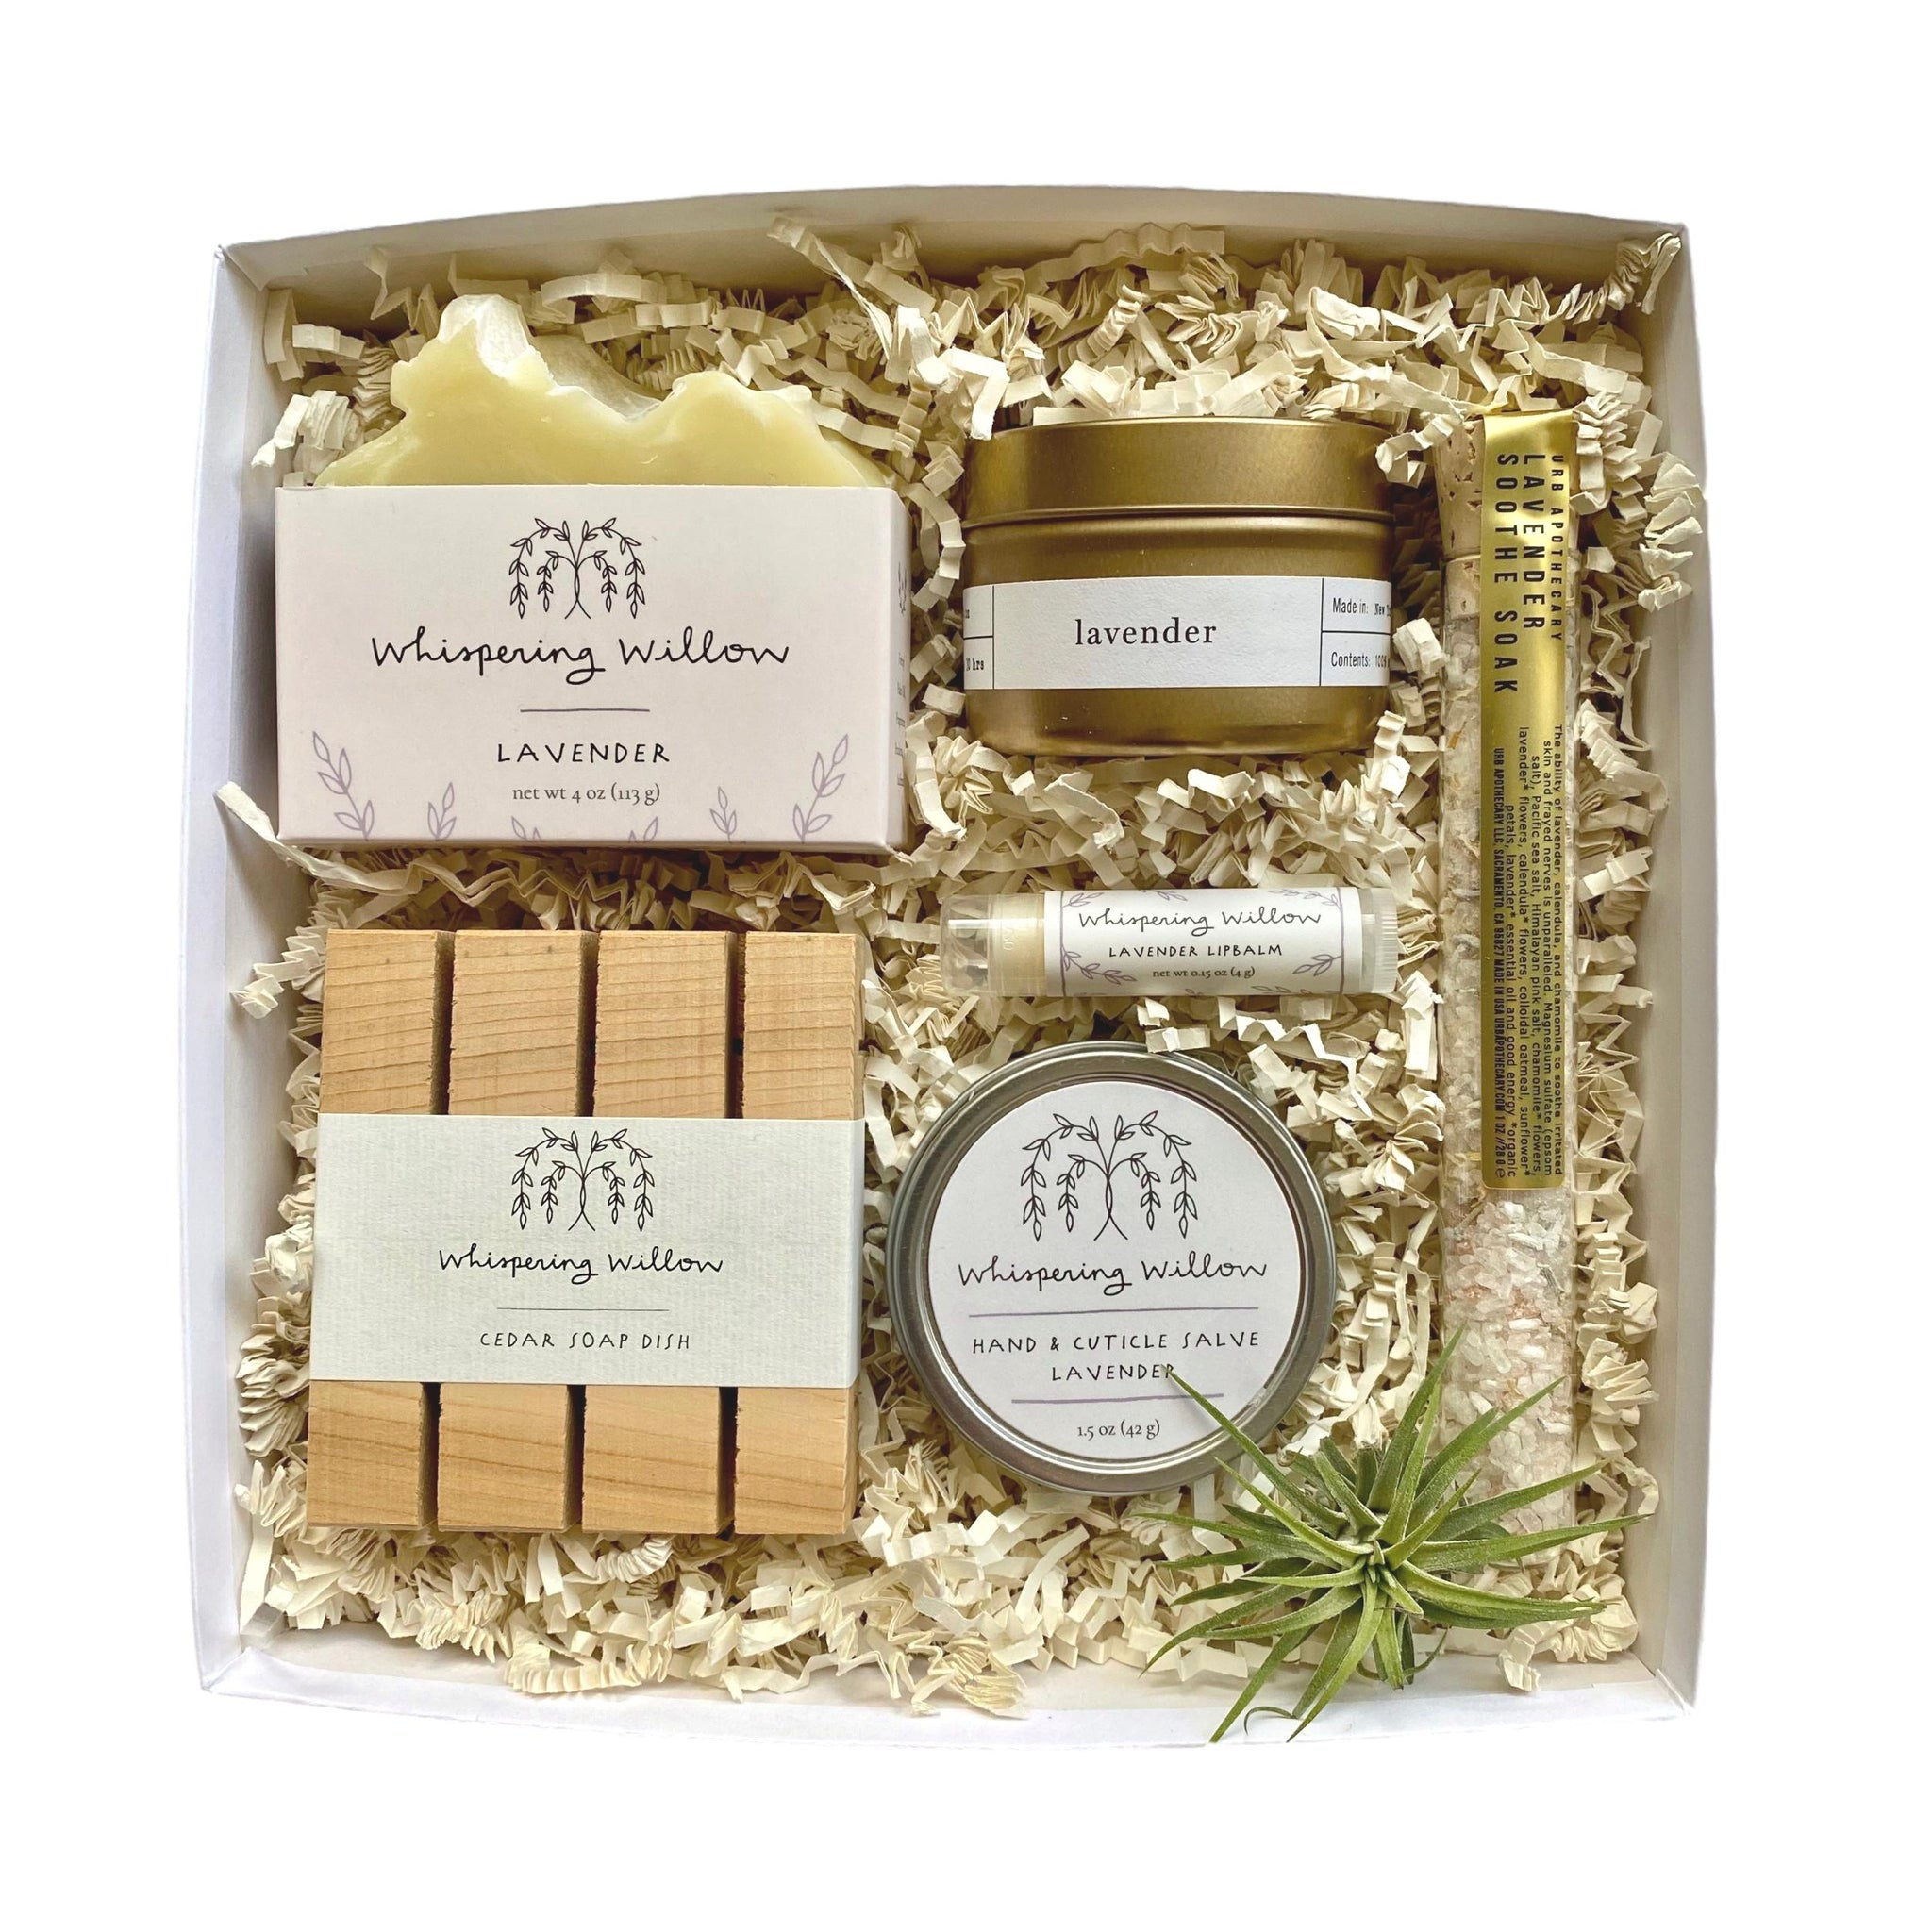 Build Your Own Gift Box - Inspiration Gallery